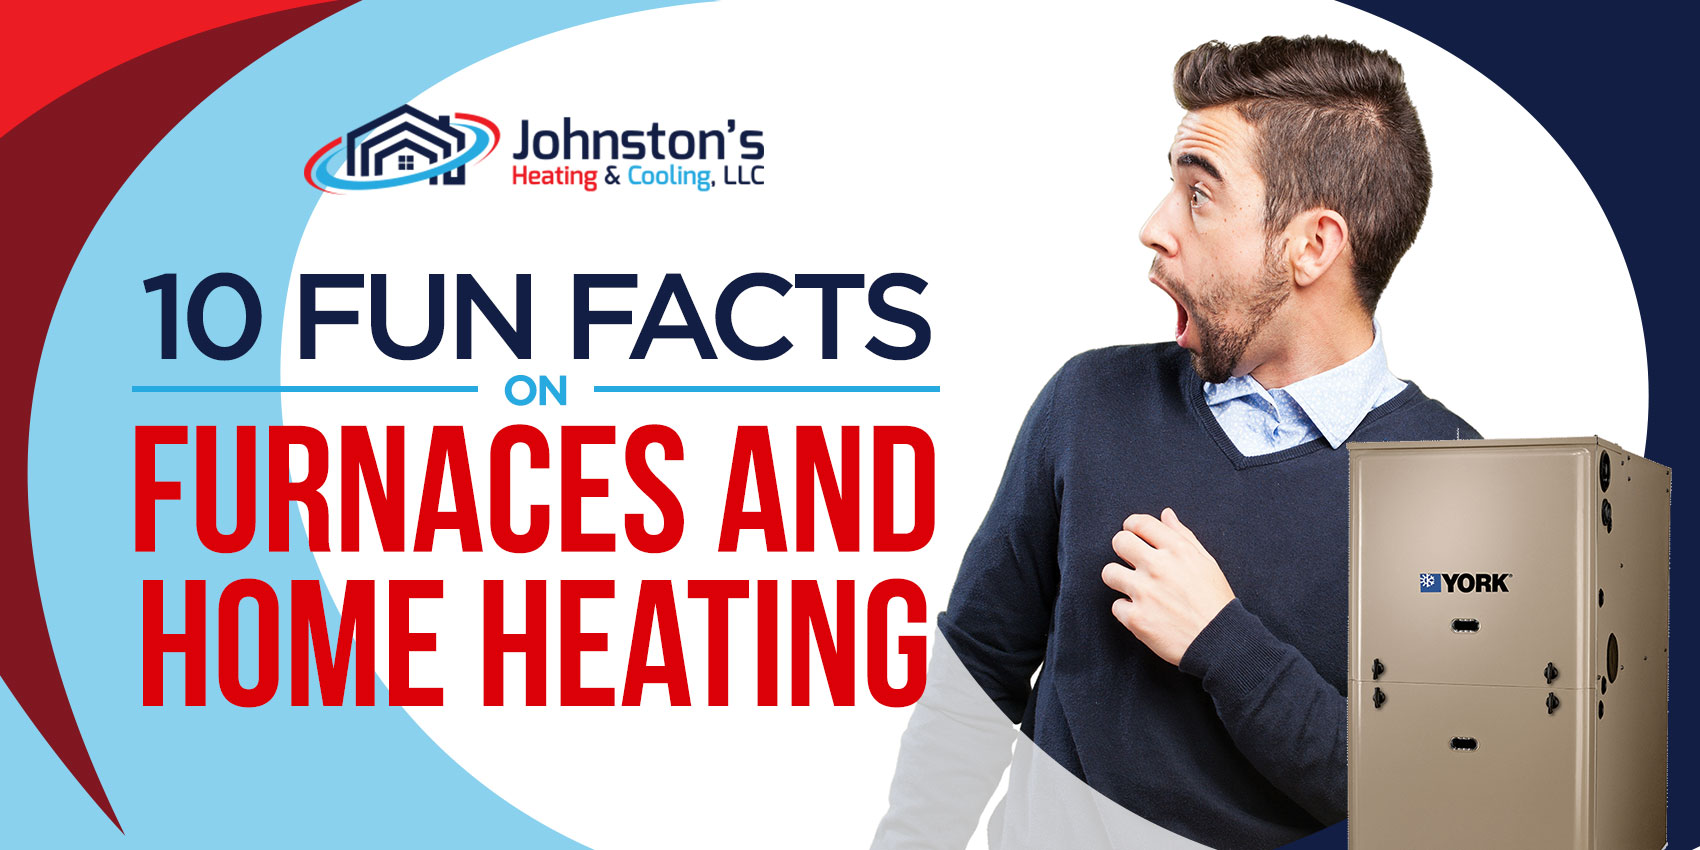 10 Fun Facts on Furnaces and Home Heating